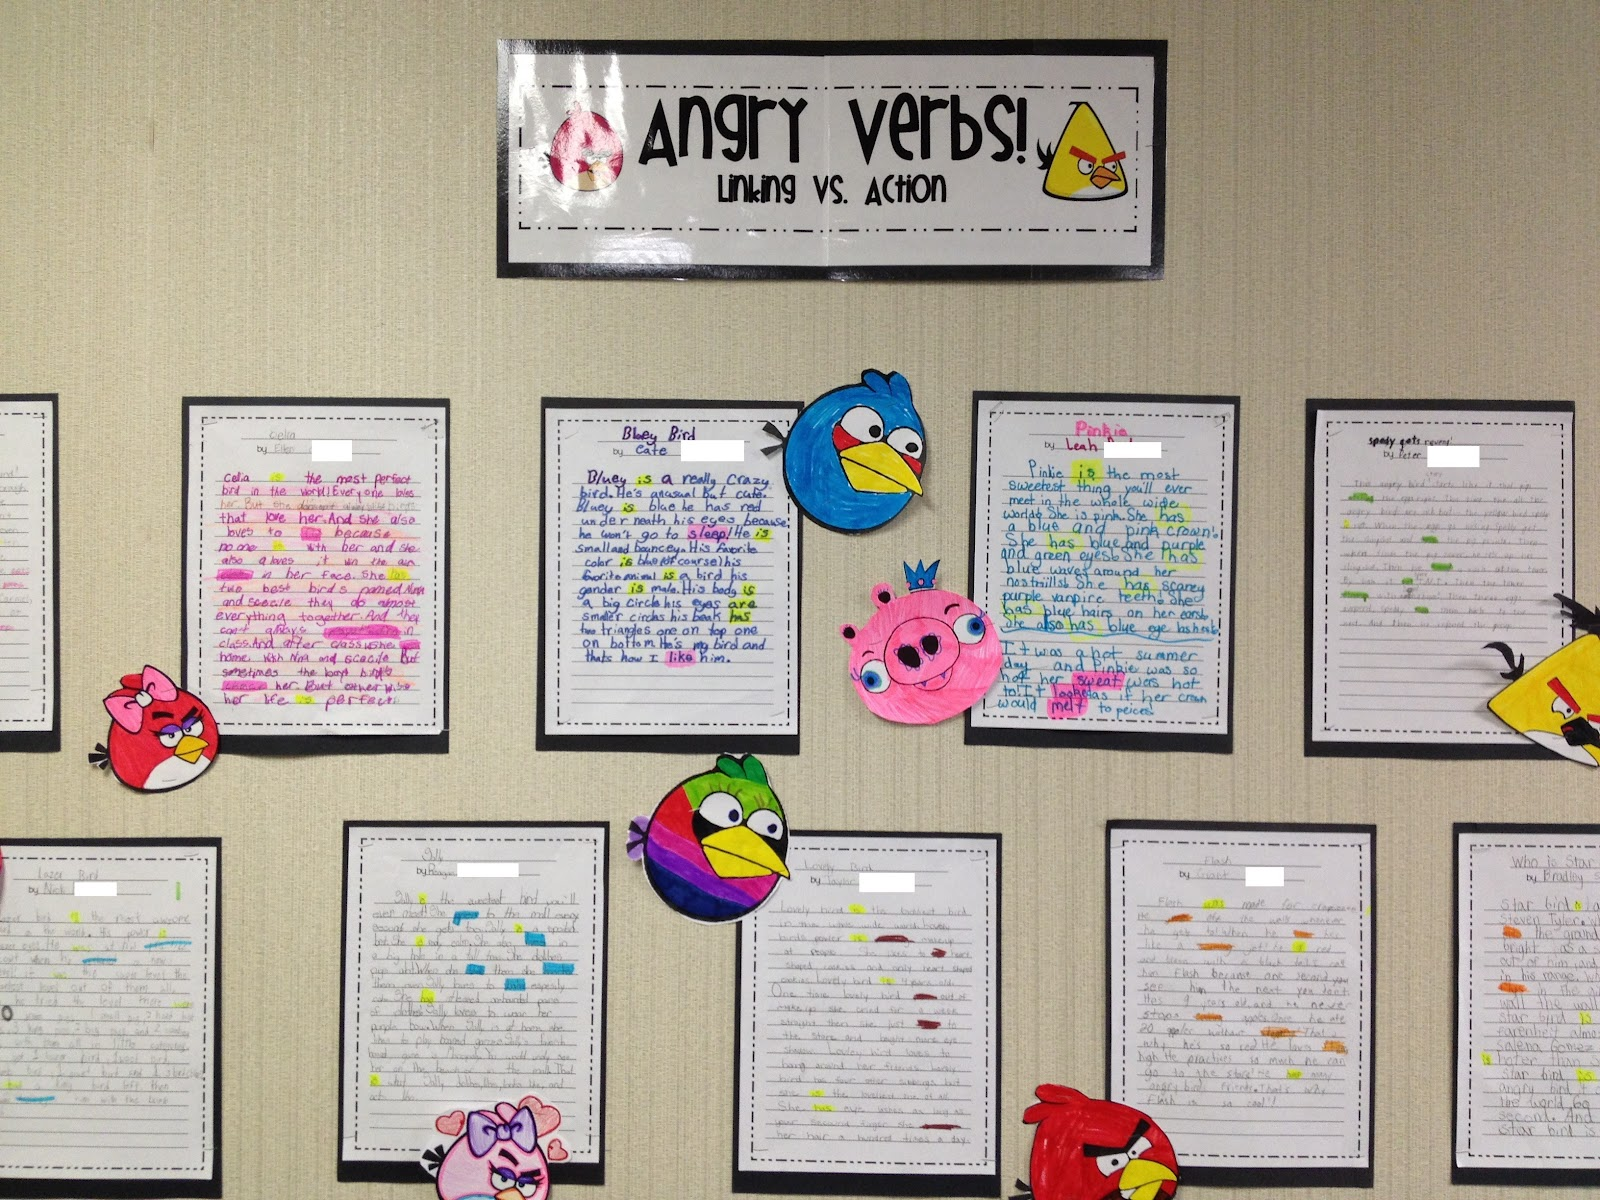 the heart of rd angry verbs list of linking verbs we know and each child highlighted them yellow throughout the story finally everyone highlighted their action verbs a different